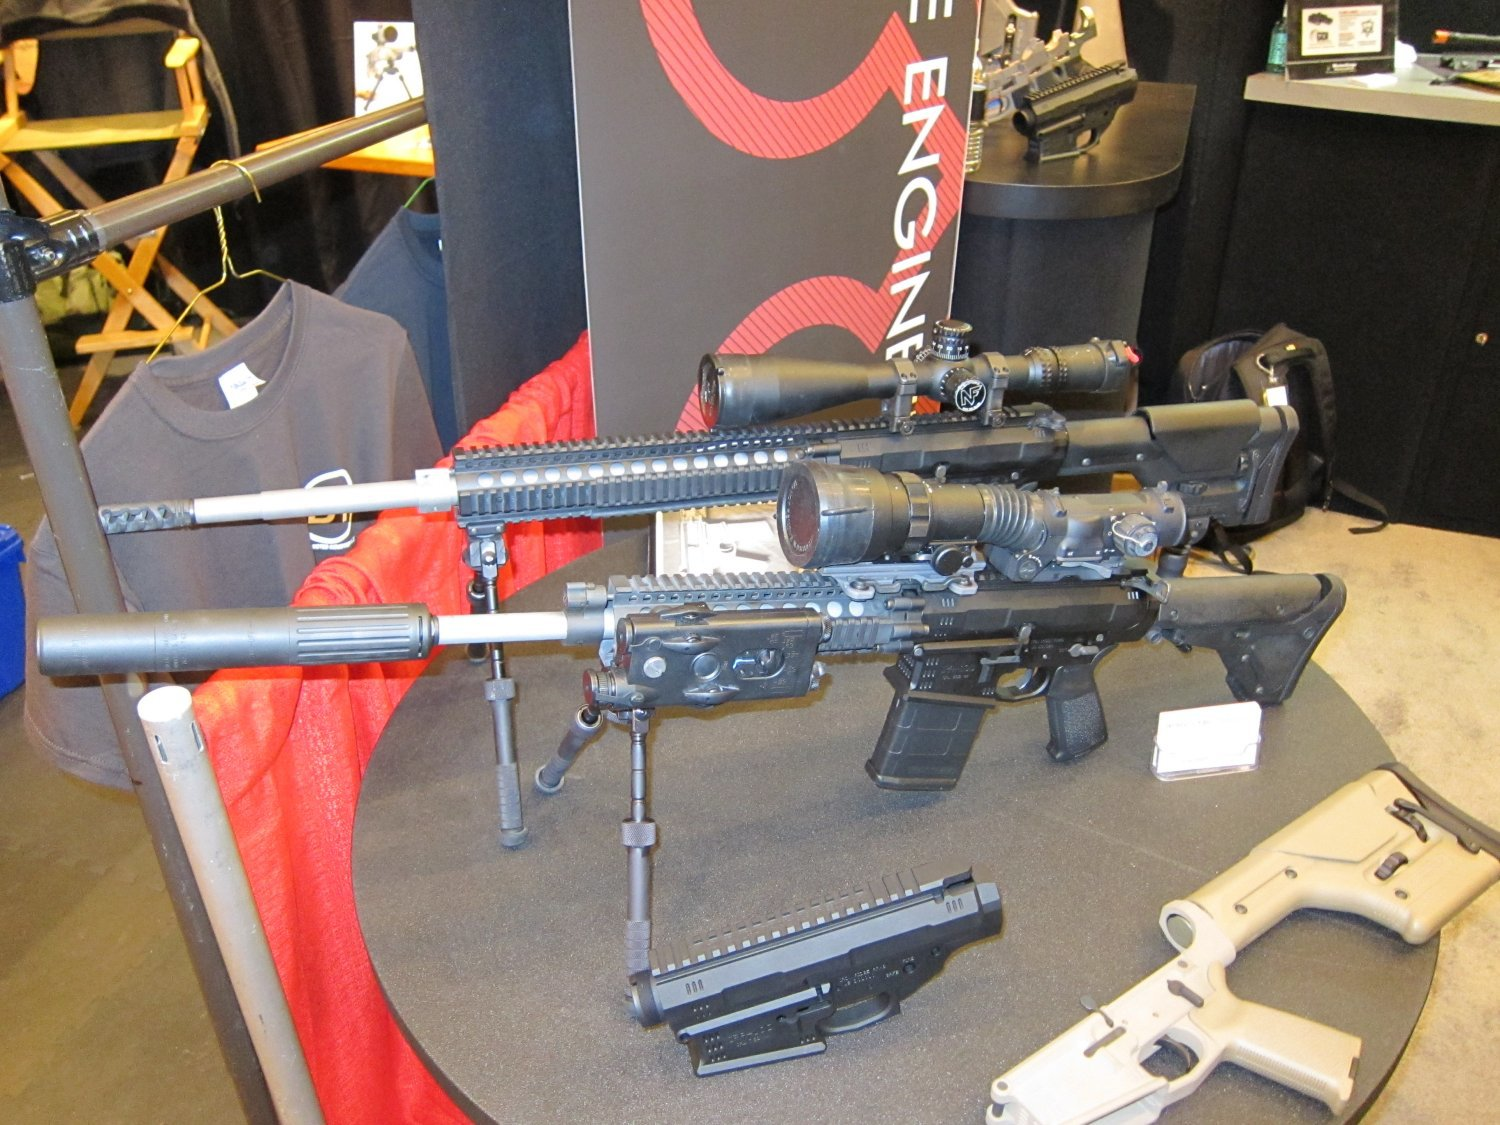 SHOT Show 2010 Iron Ridge Arms IRA 7.62mm AR Rifle Carbine 1 <!  :en  >Iron Ridge Arms IRA X (formerly IRA 10) Complete Sniper Rifle/Battle Rifle: This time, Thors hammer takes the form a 7.62mm/.308 tactical AR sniper rifle/carbine.<!  :  >